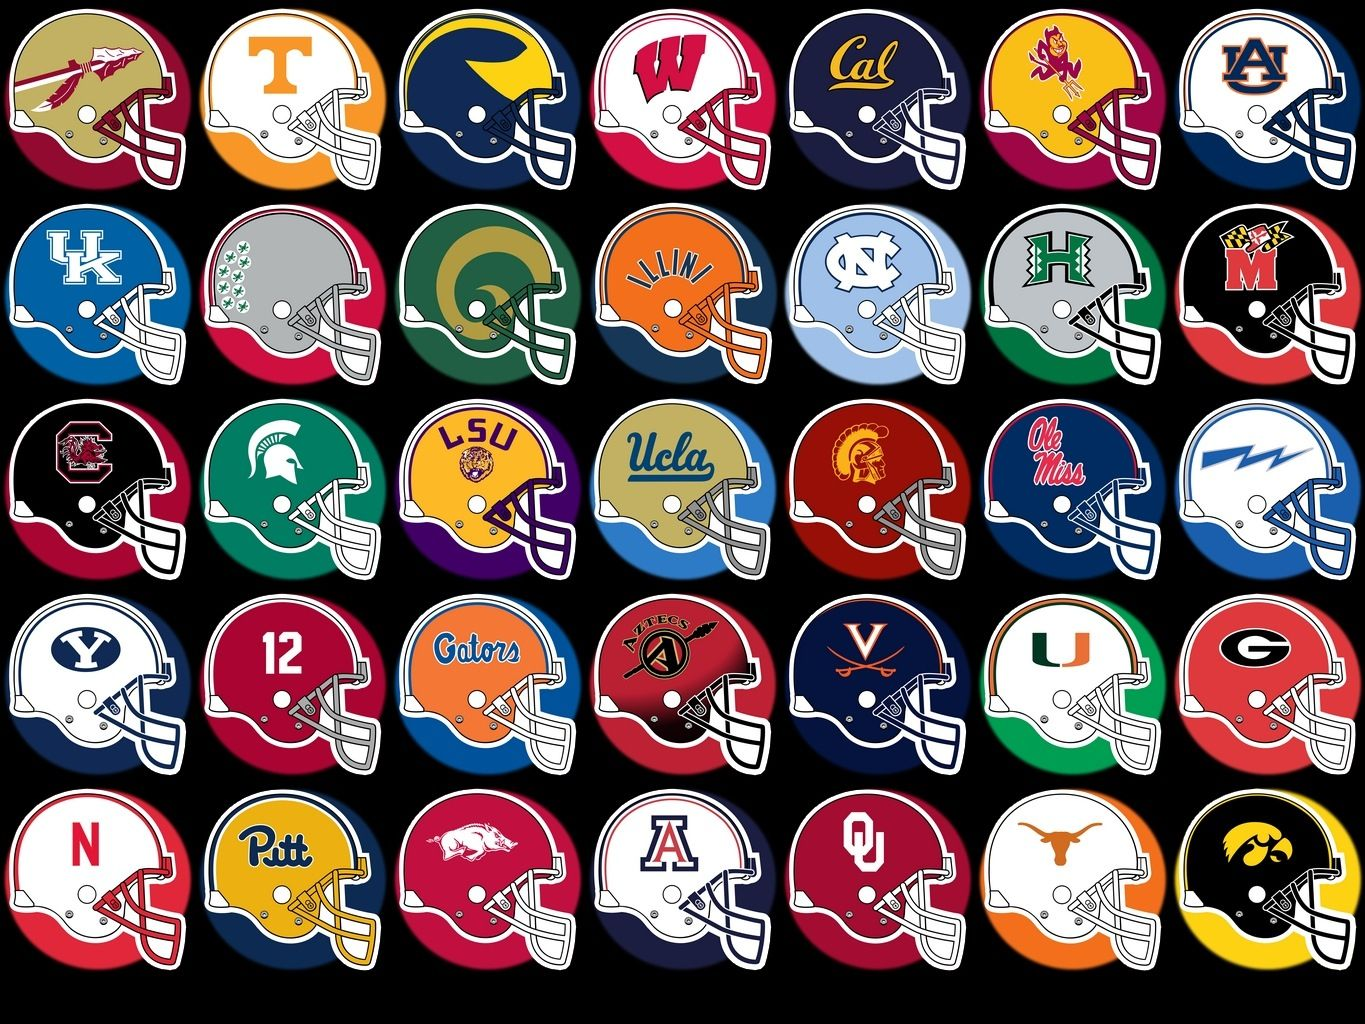 Pin by Jane Smith on ncaa   Pinterest   College american football ...